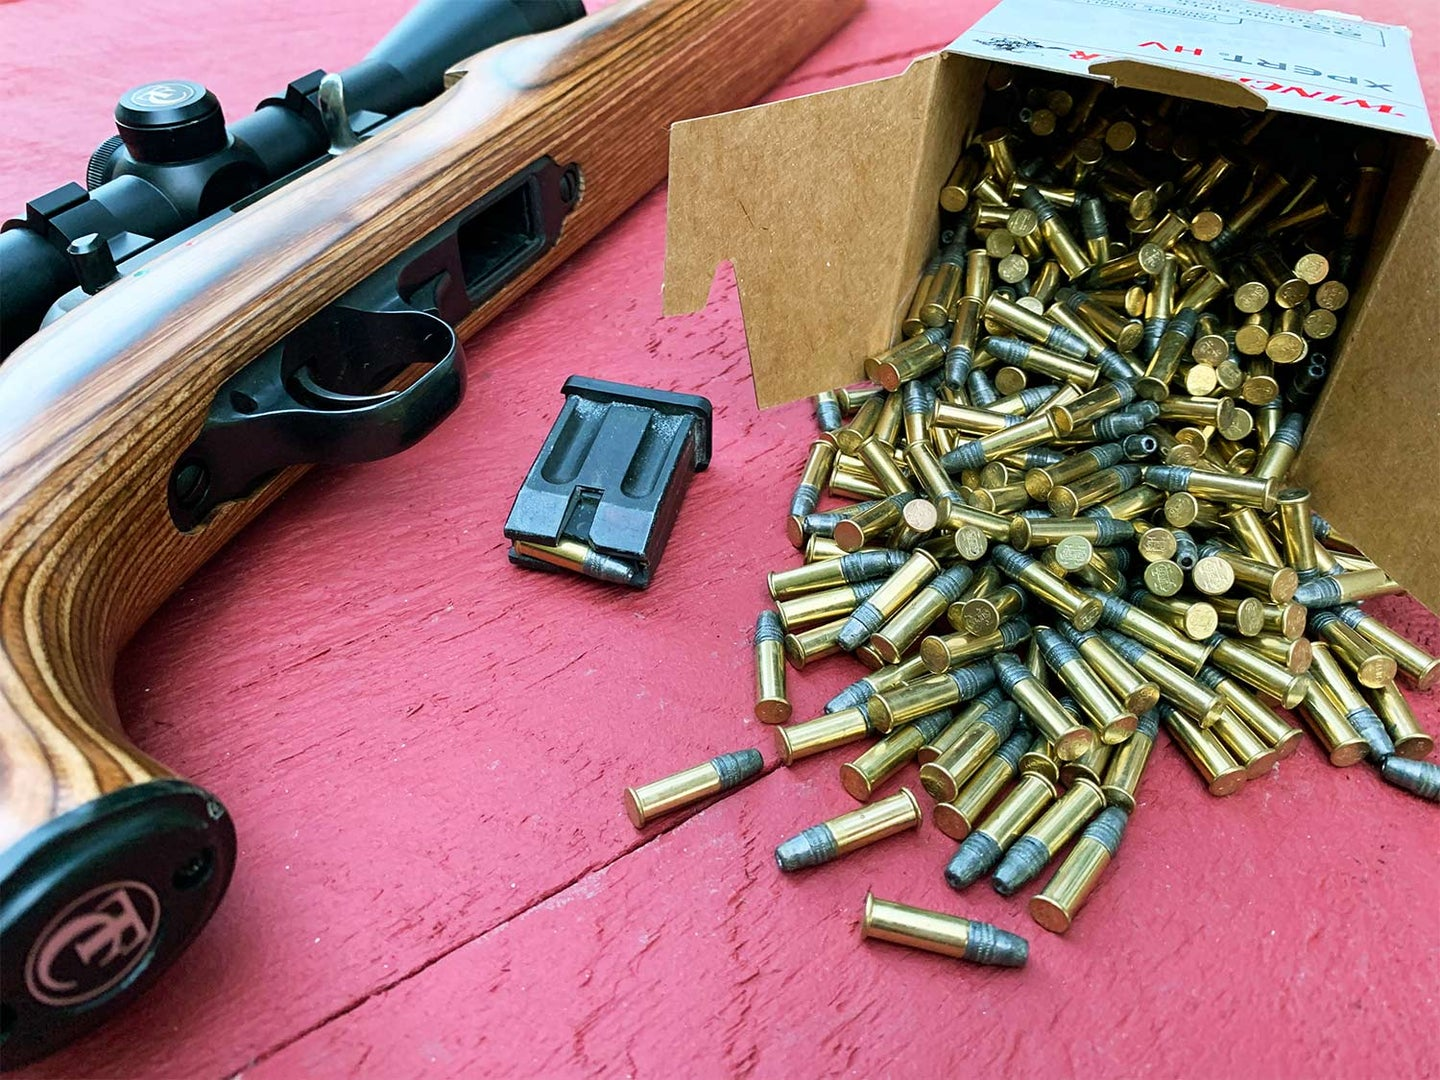 A rifle on a table next to a box of rifle ammunition spilling out onto the table.